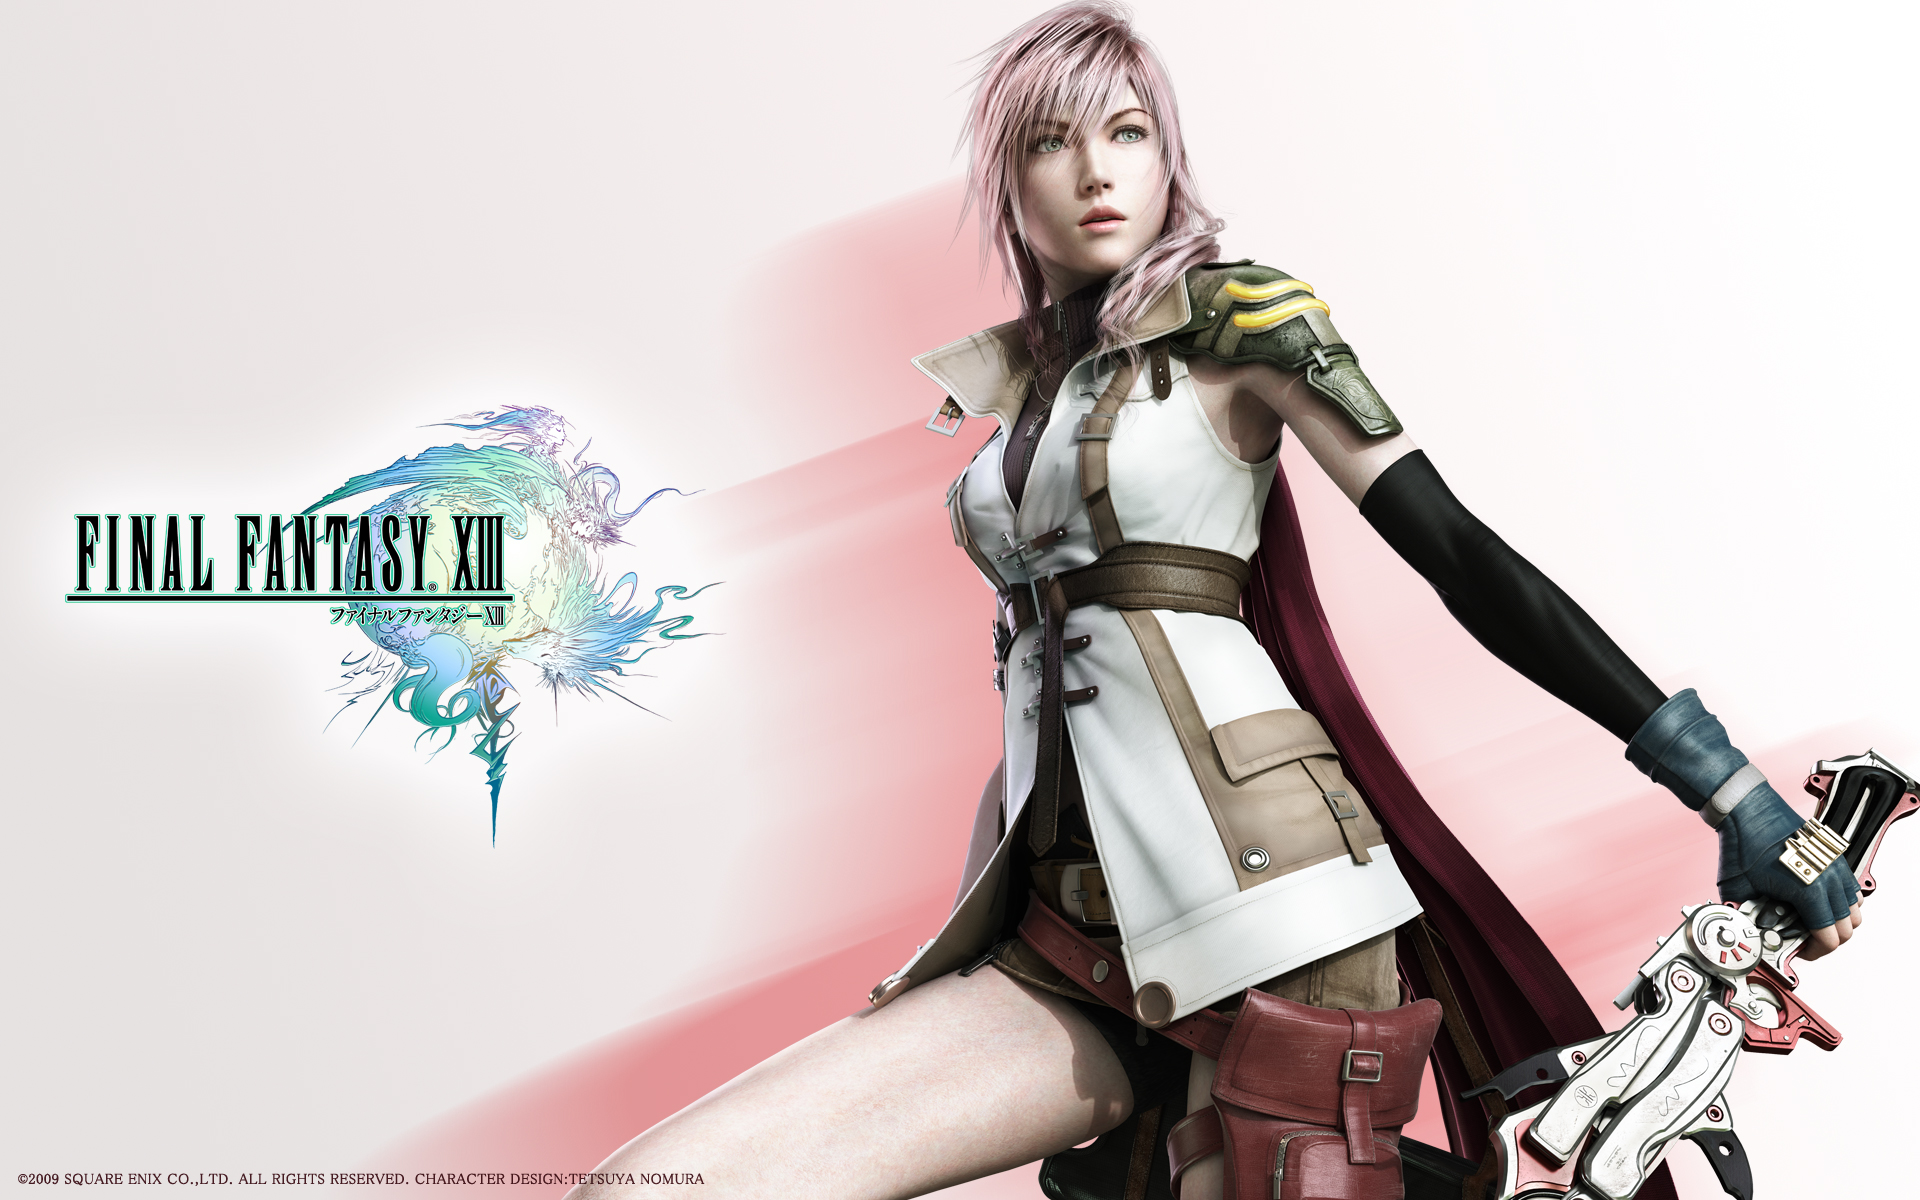 Collection of Final Fantasy Xiii Wallpaper on HDWallpapers